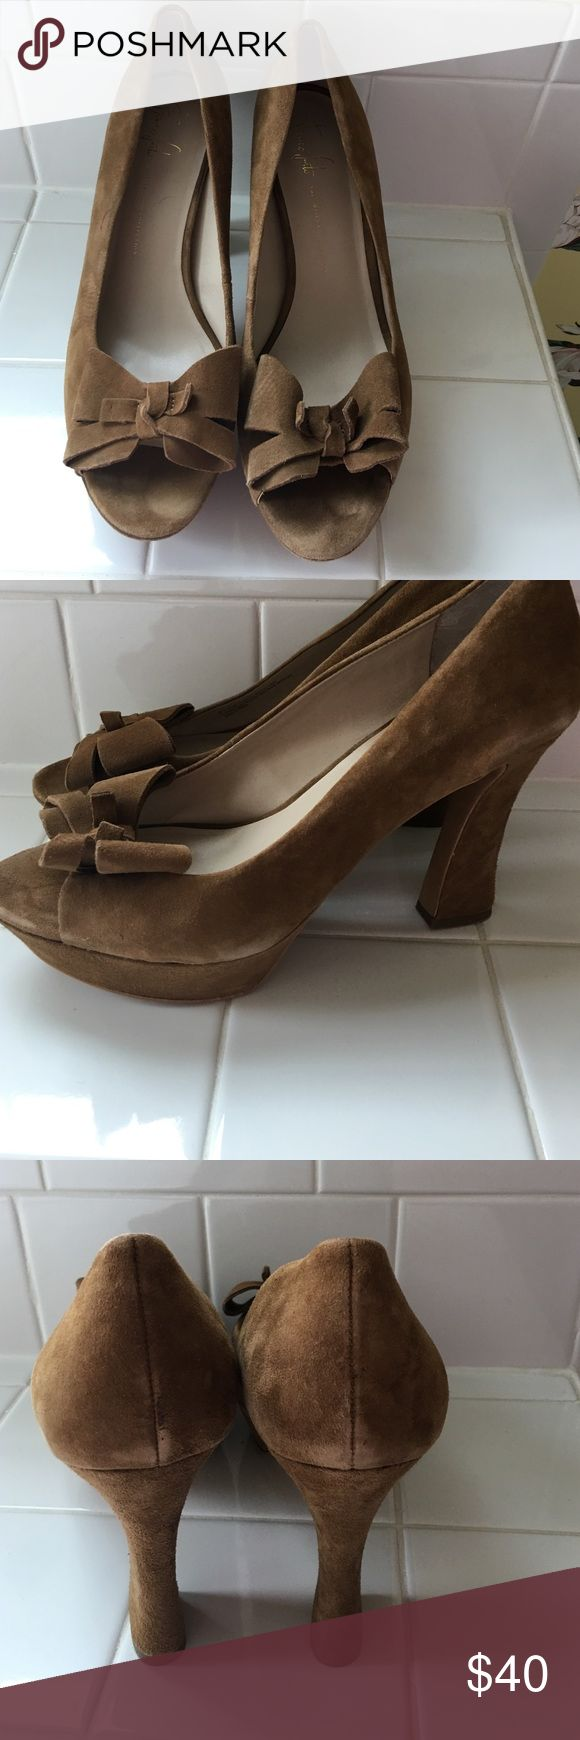 "Franco Sarto suede tan heels Franco Sarto ""the artist's collection."" Small red ink on shoe in pic. Franco Sarto Shoes Heels"